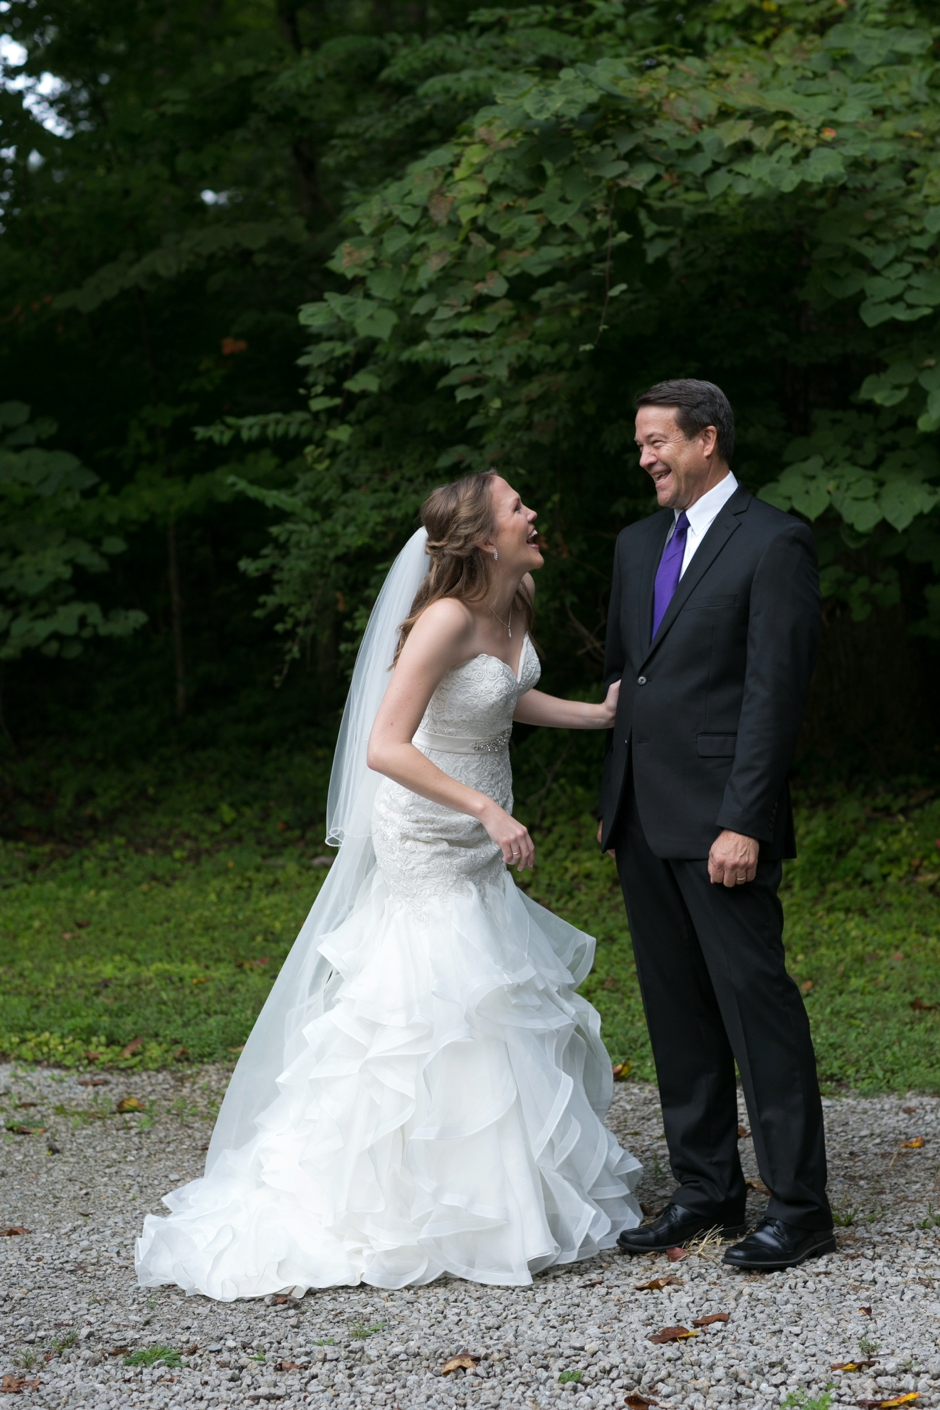 kavanaugh-conference-wedding-007-2.jpg